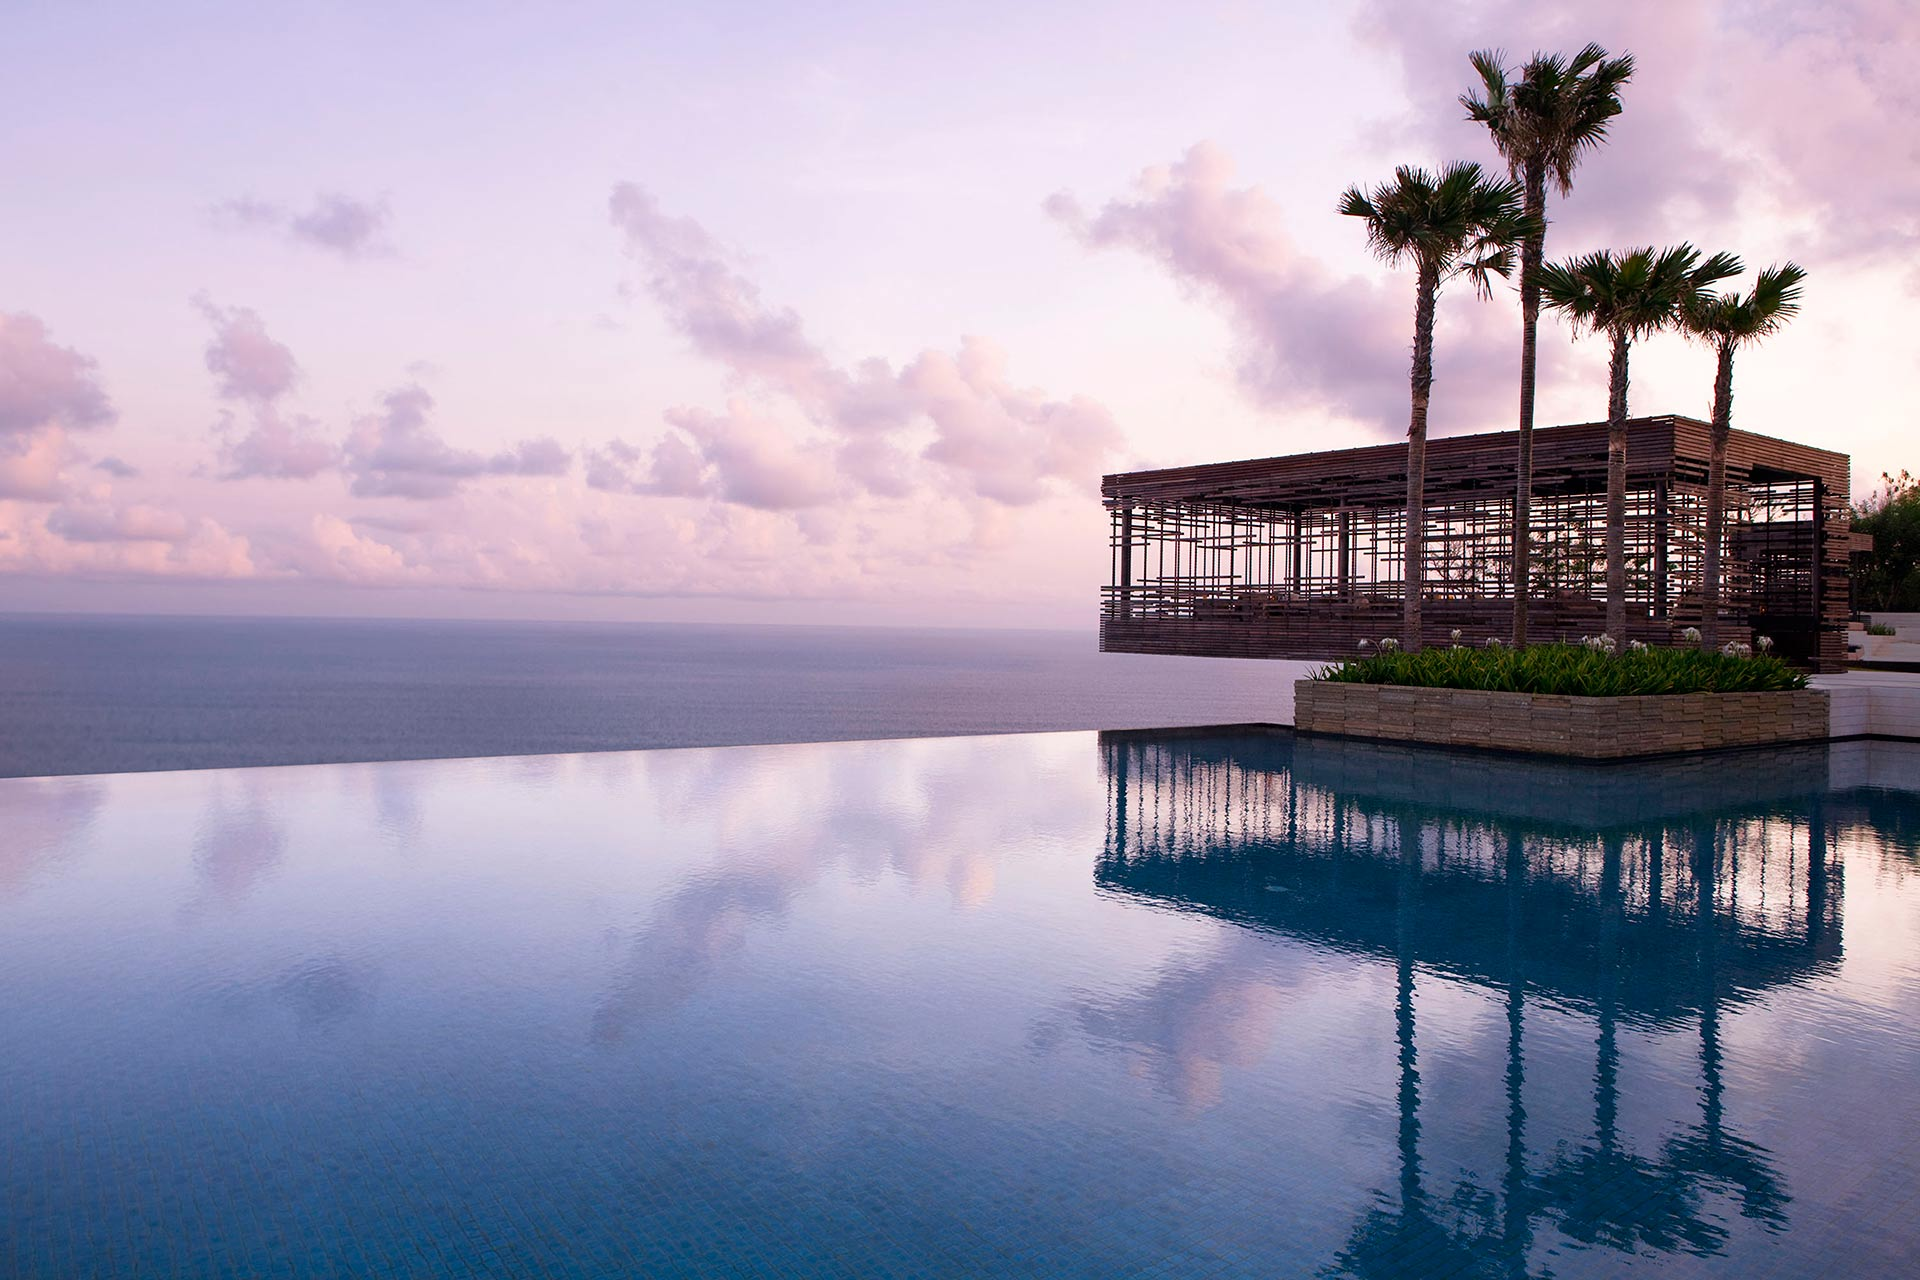 The Olympic-size infinity pool is a great spot to enjoy the sunset